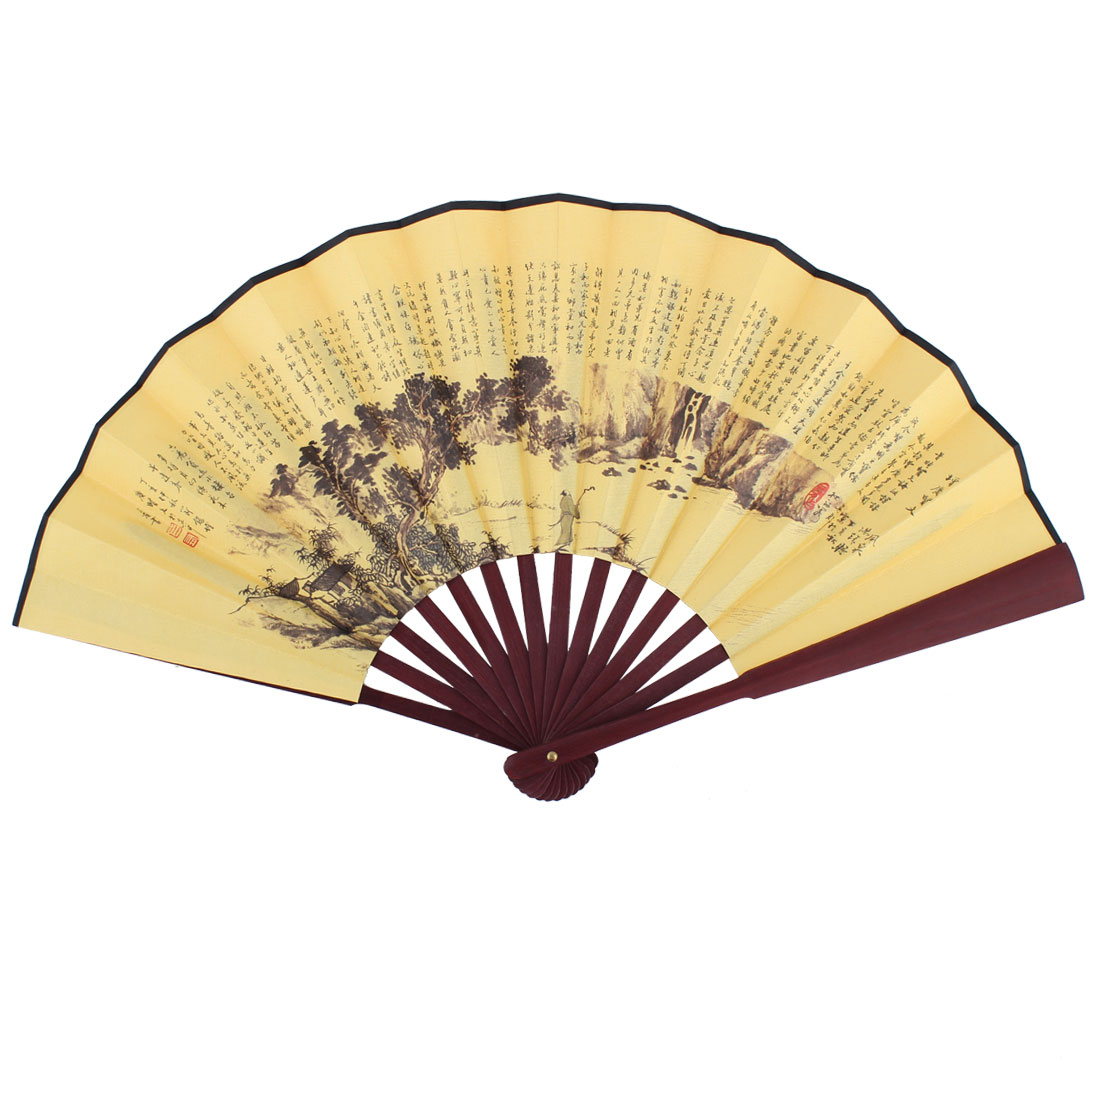 Man Bamboo Ribs Chinese Poems Landscape Pattern Summer Folding Cooling Hand Fan